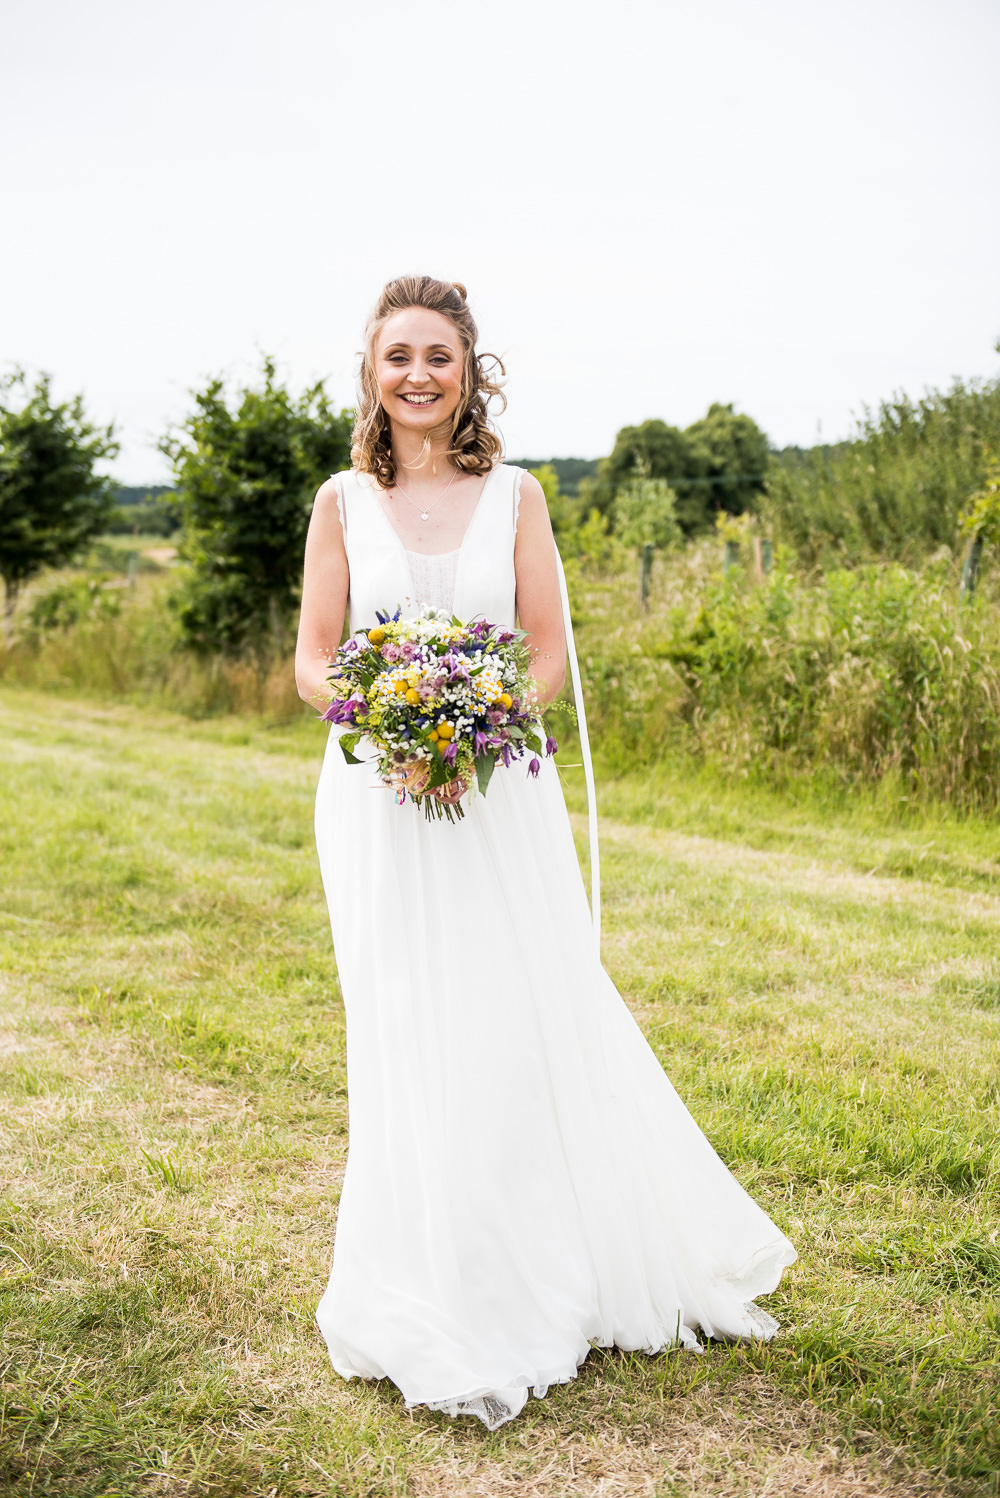 Bride Bridal Lace Dress Lace Sleeveless Gypsophila Crown Wildflower Bouquet Inkersall Grange Farm Wedding Jessica Grace Photography